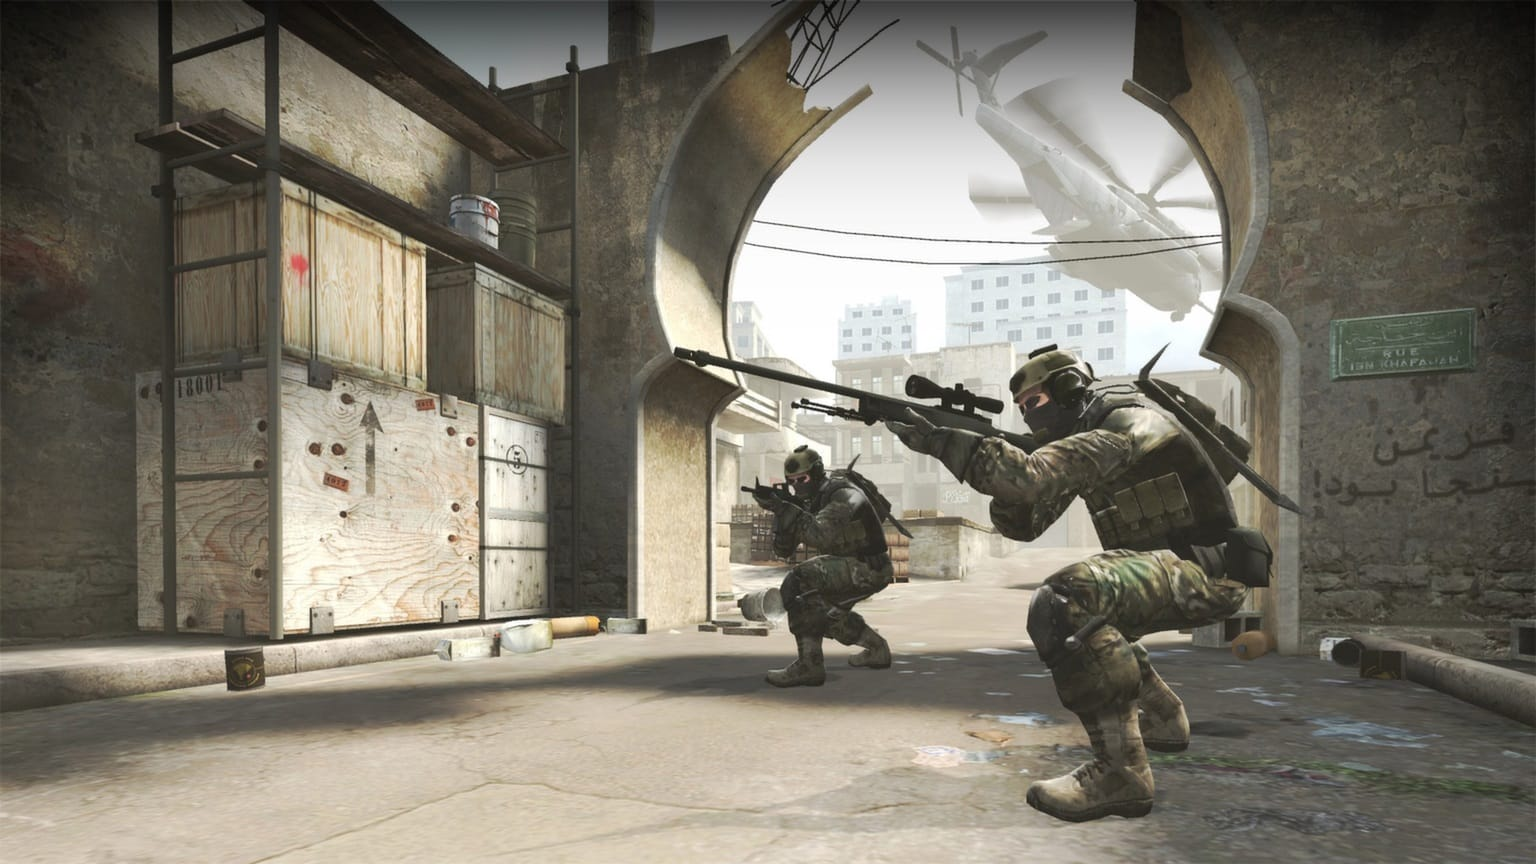 CS:GO pros are now allowed to kill themselves again